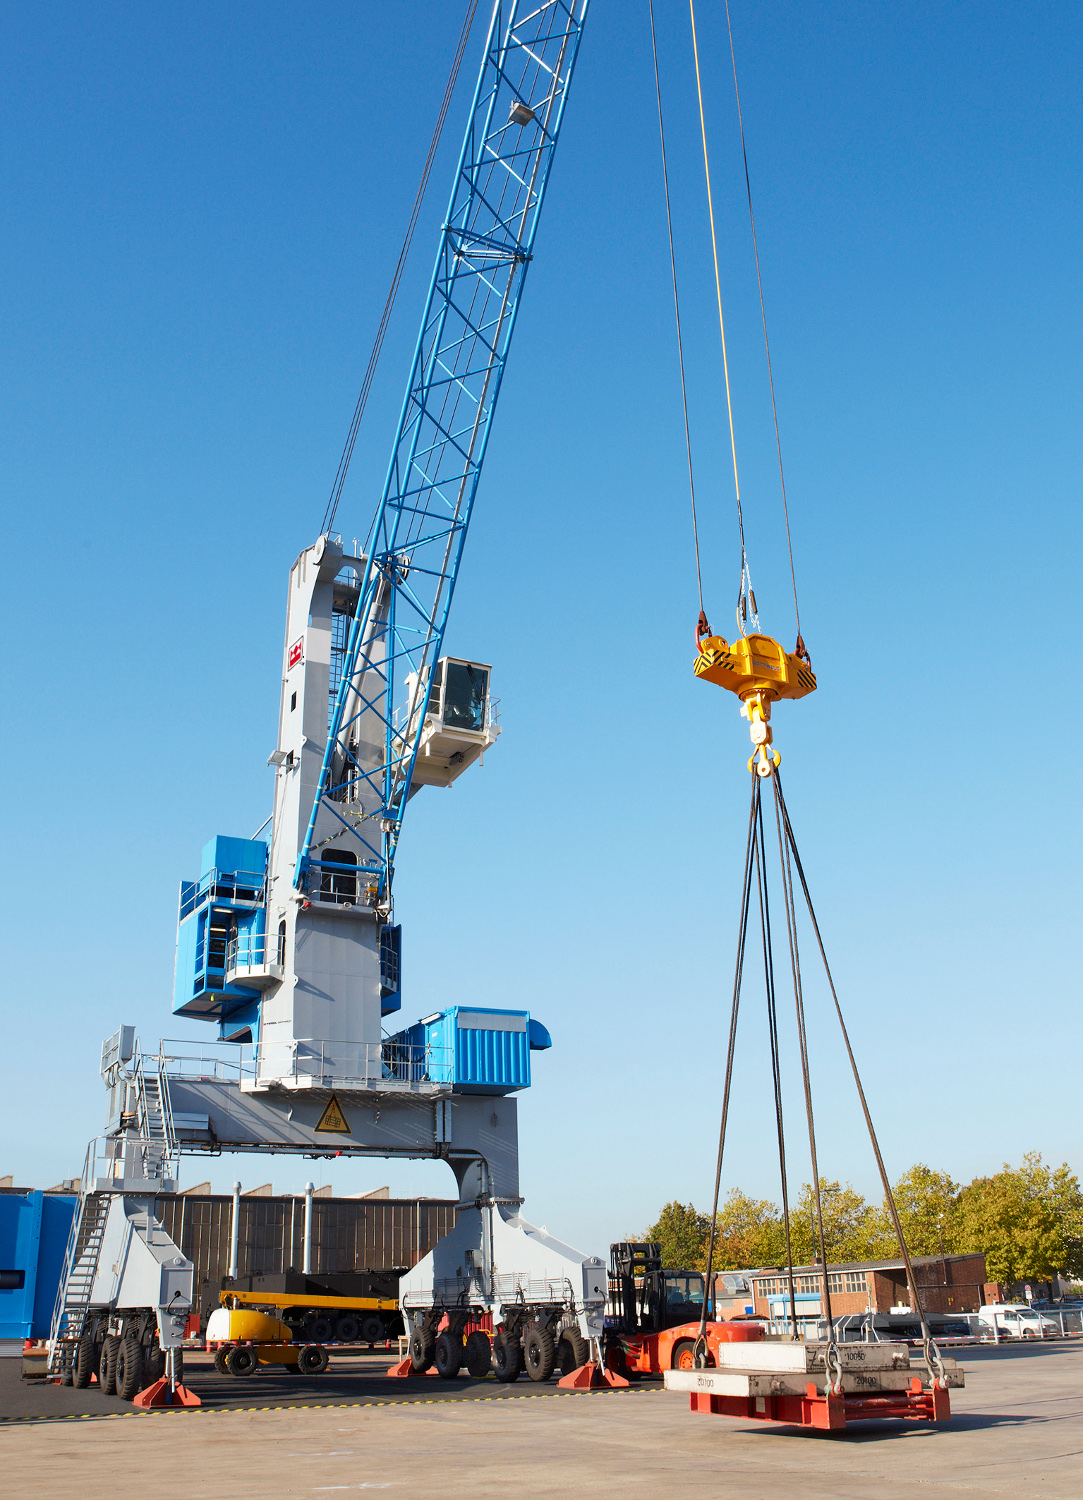 mobile crane market in indonesia 1 mobile crane operator jobs in indonesia posted apply for latest mobile crane operator openings in indonesia for freshers and experienced.